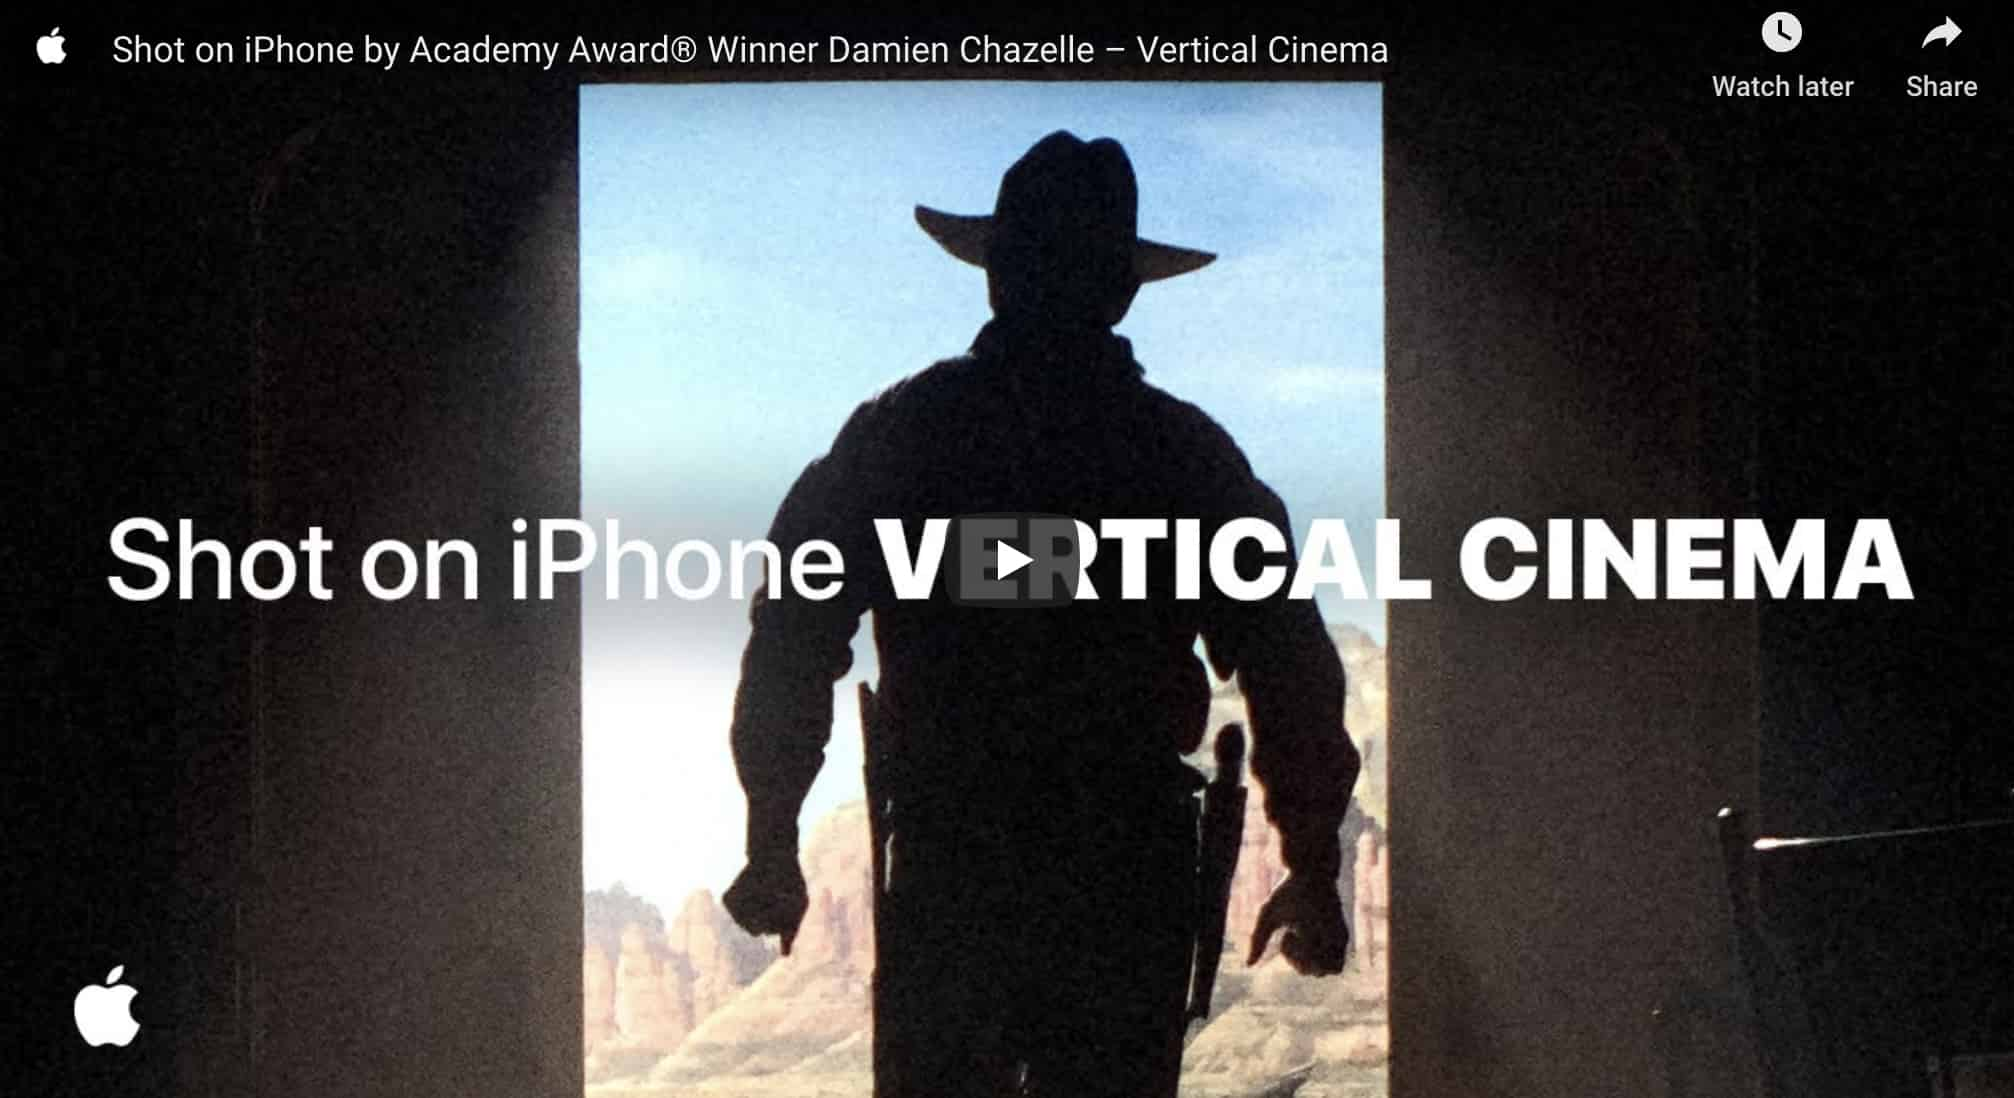 Apple Shares Vertical 'Shot on iPhone' Short Film by Damien Chazelle